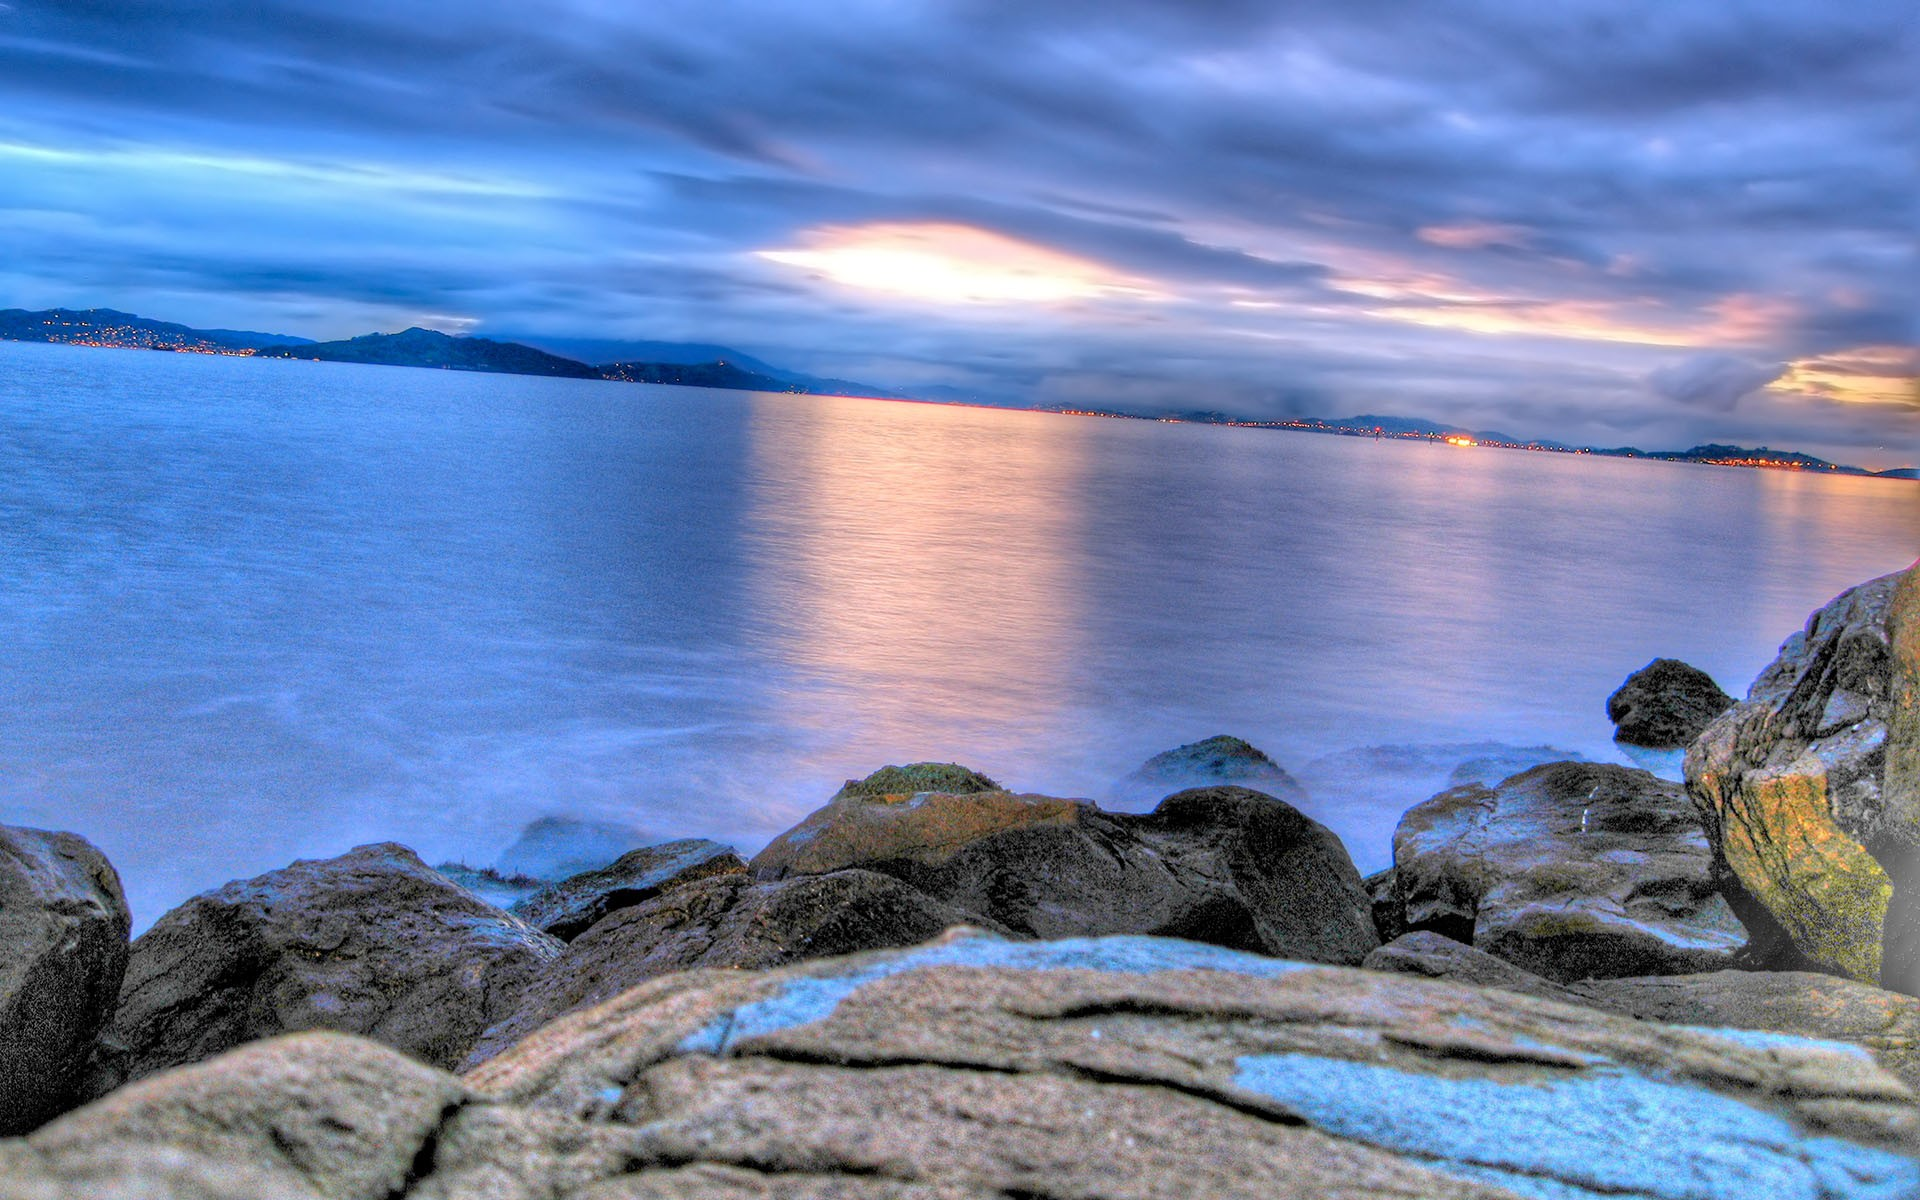 Wallpaper download national geographic - Sunset Ocean Landscapes Beach Rocks Seaside Wallpaper